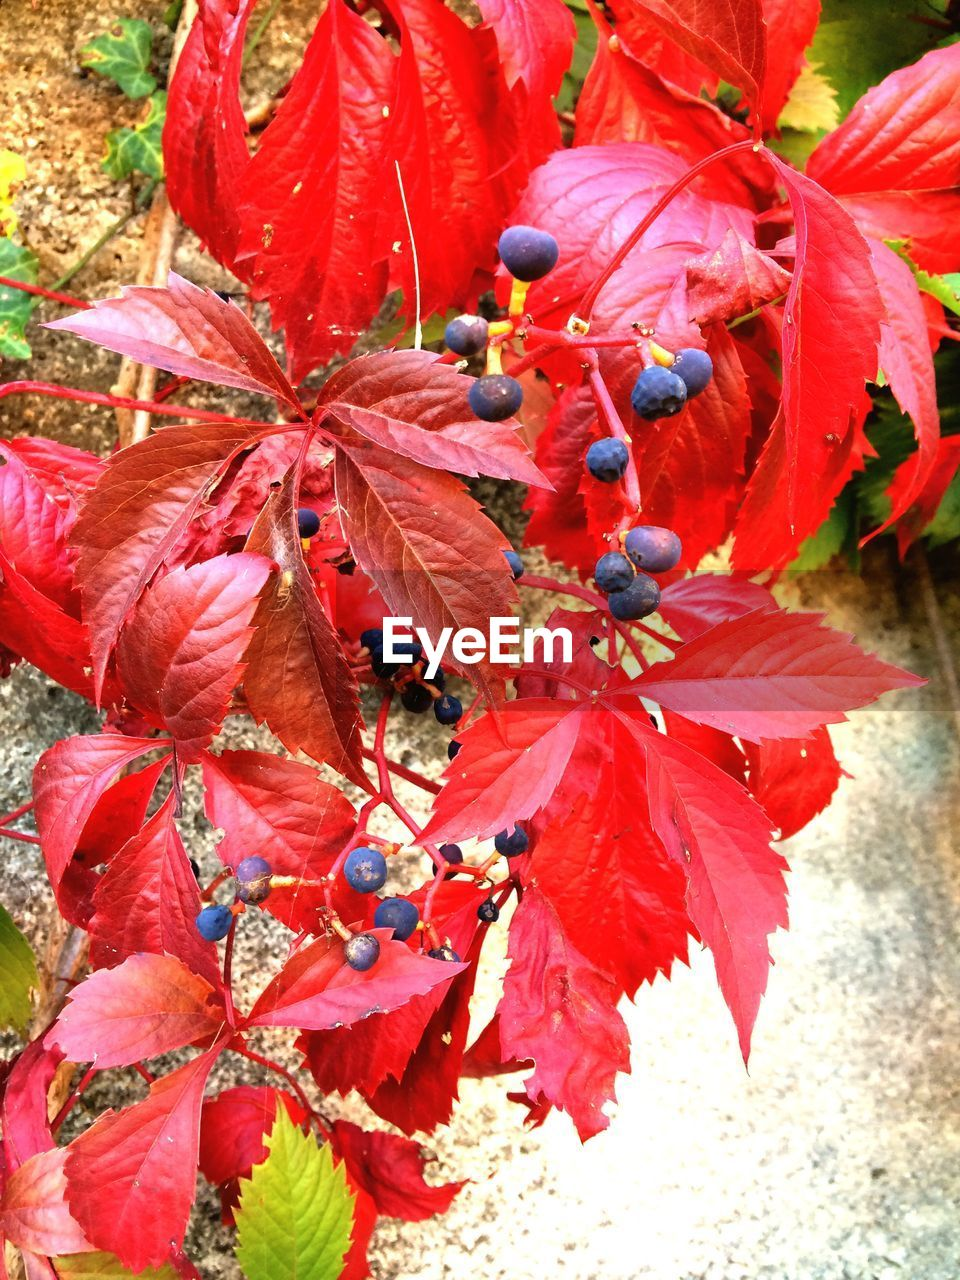 nature, day, growth, outdoors, leaf, beauty in nature, no people, red, close-up, fragility, freshness, flower, flower head